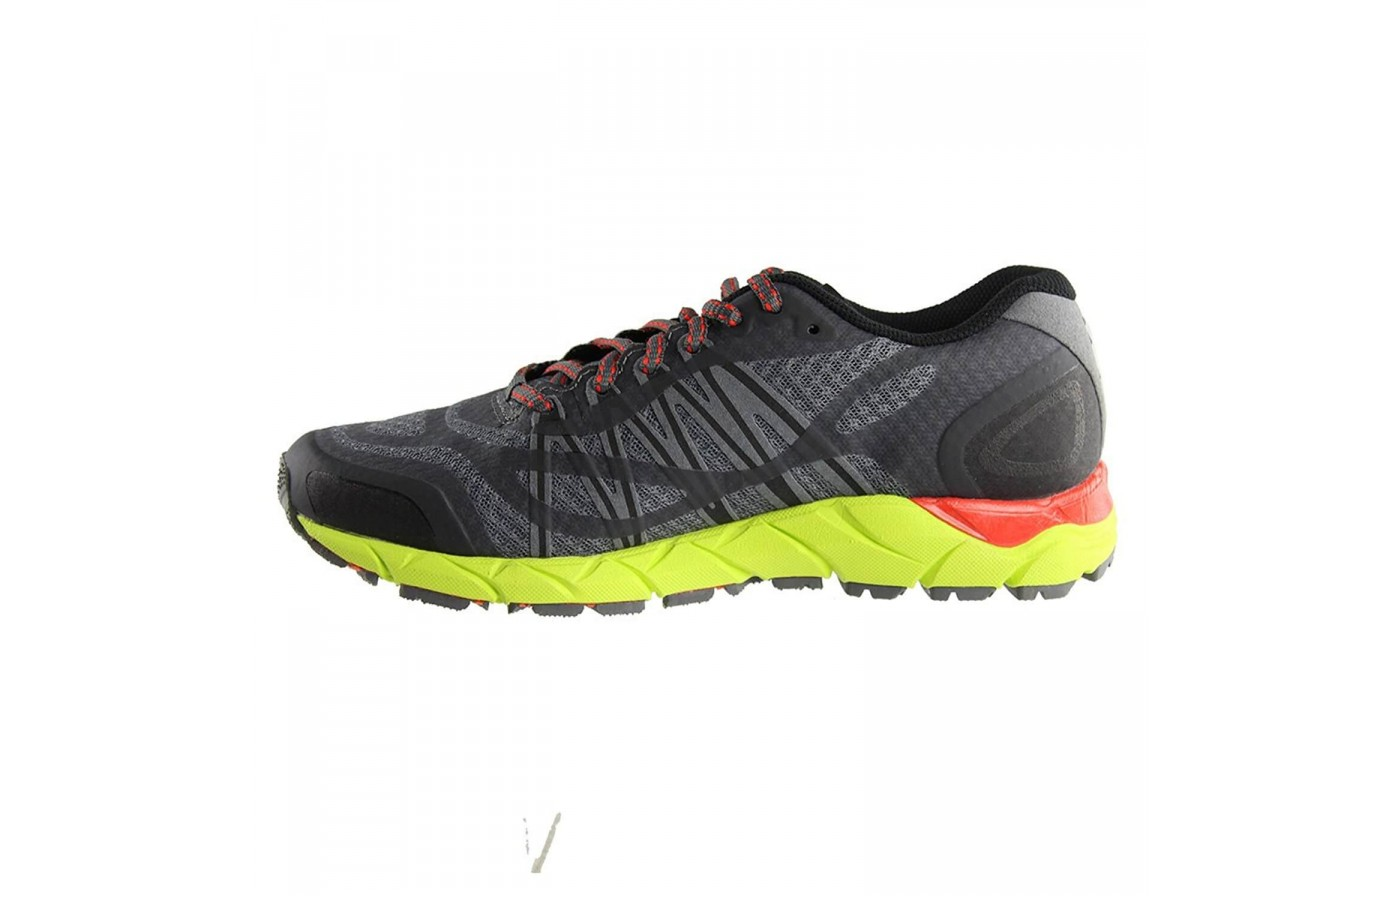 The midsole of the 361 Ortega 2 features a higher drop closer to traditional running shoes than the average trail runner.